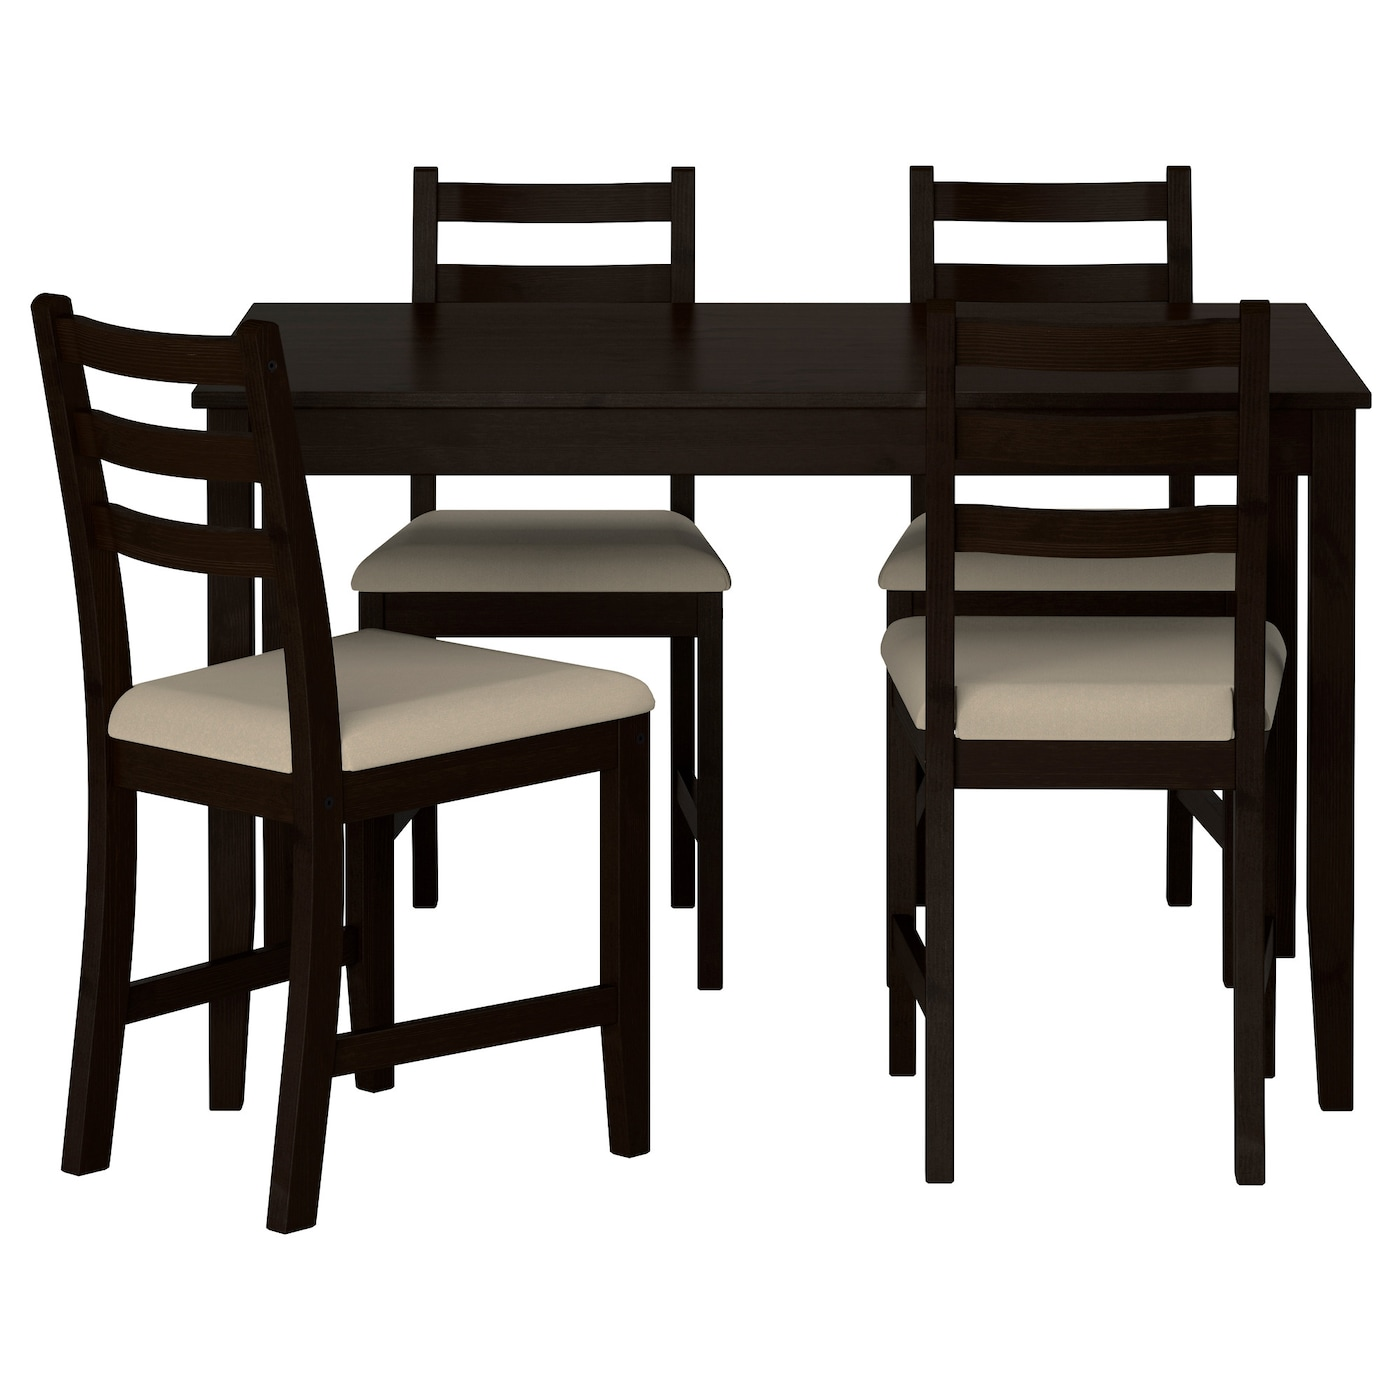 Lerhamn table and 4 chairs black brown ramna beige 118x74 for Dinner table set for 4